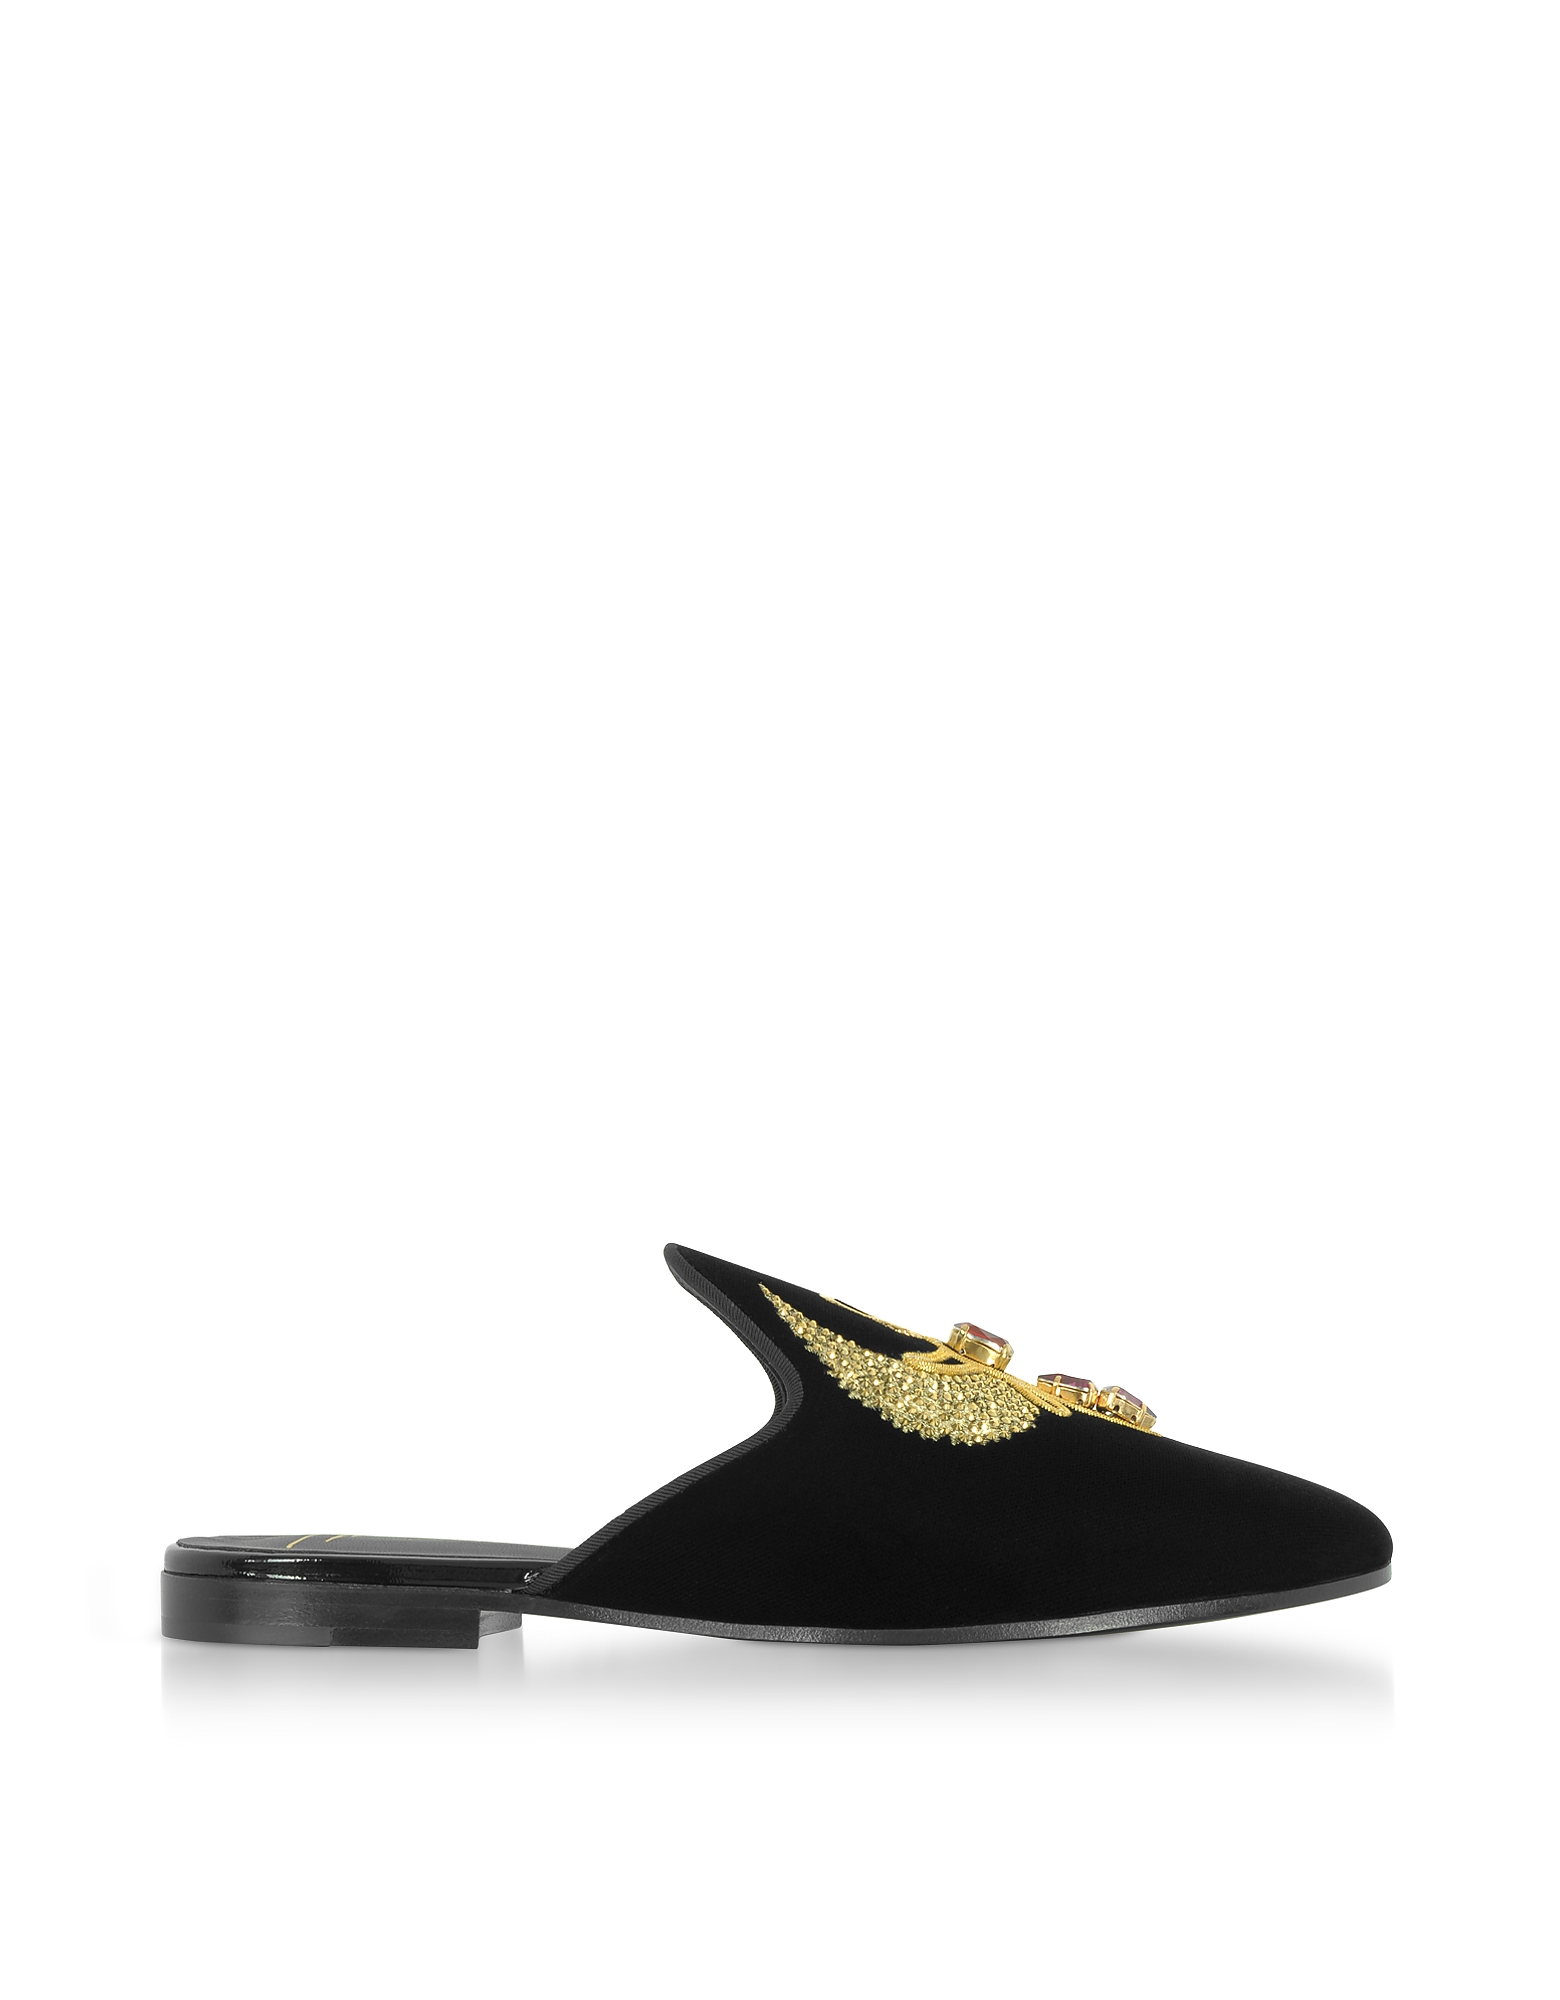 Giuseppe Zanotti Shoes, Black Velvet Flat Mules w/Egyptian Embroidery